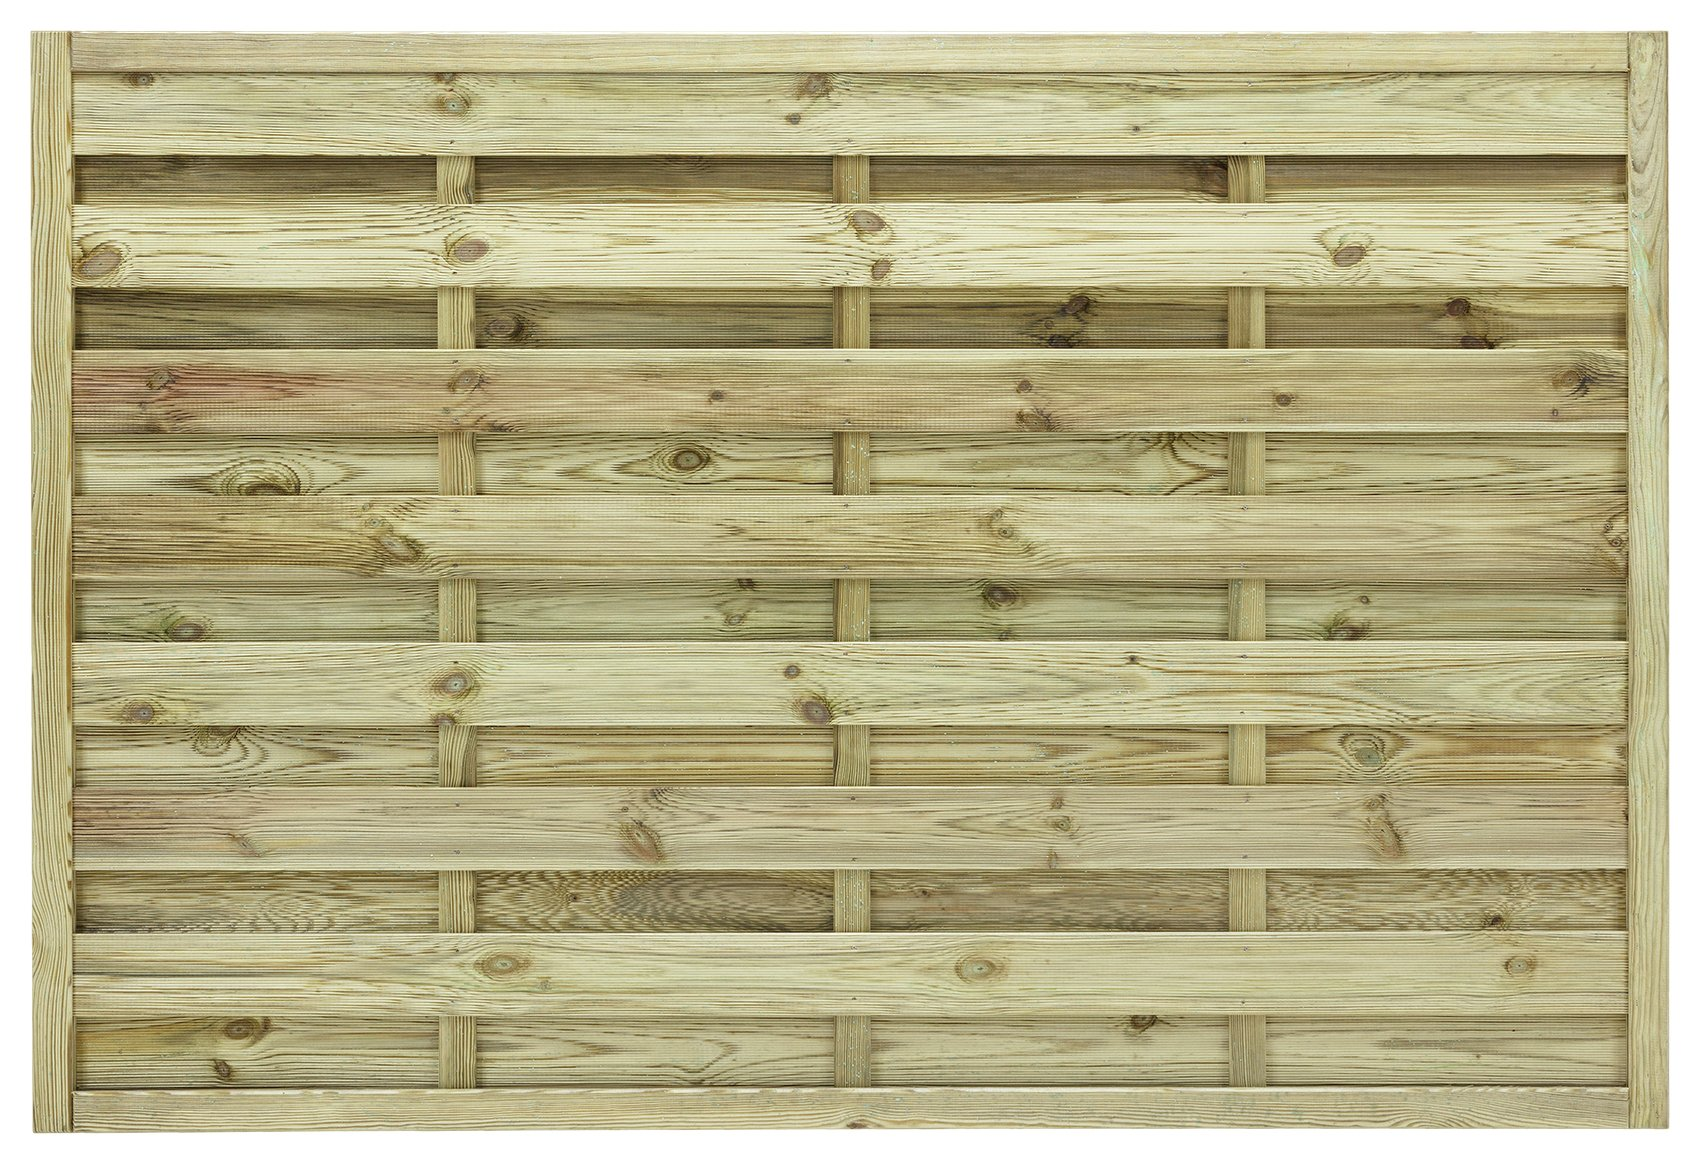 Image of Grange 1.2m St Espirit Square Fence Panel - Pack of 4.